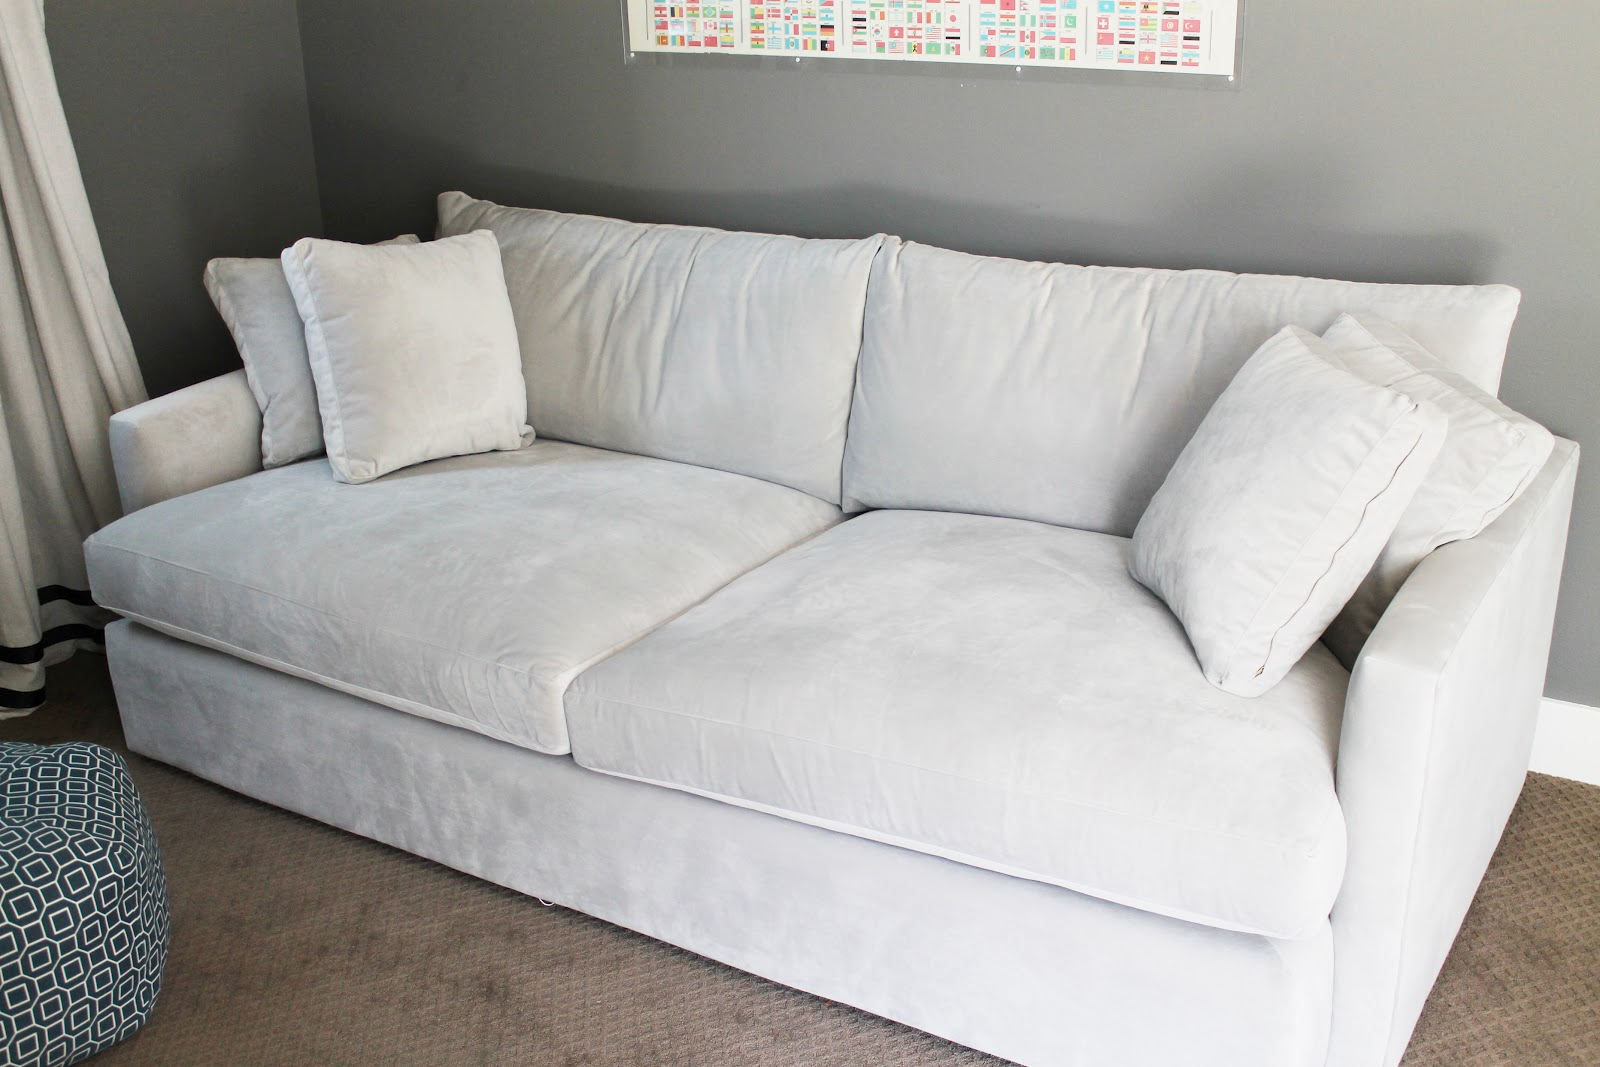 Furniture Simple But Elegant Tufted Sofa Design With Crate And. Crate And Barrel  Vaughn ...